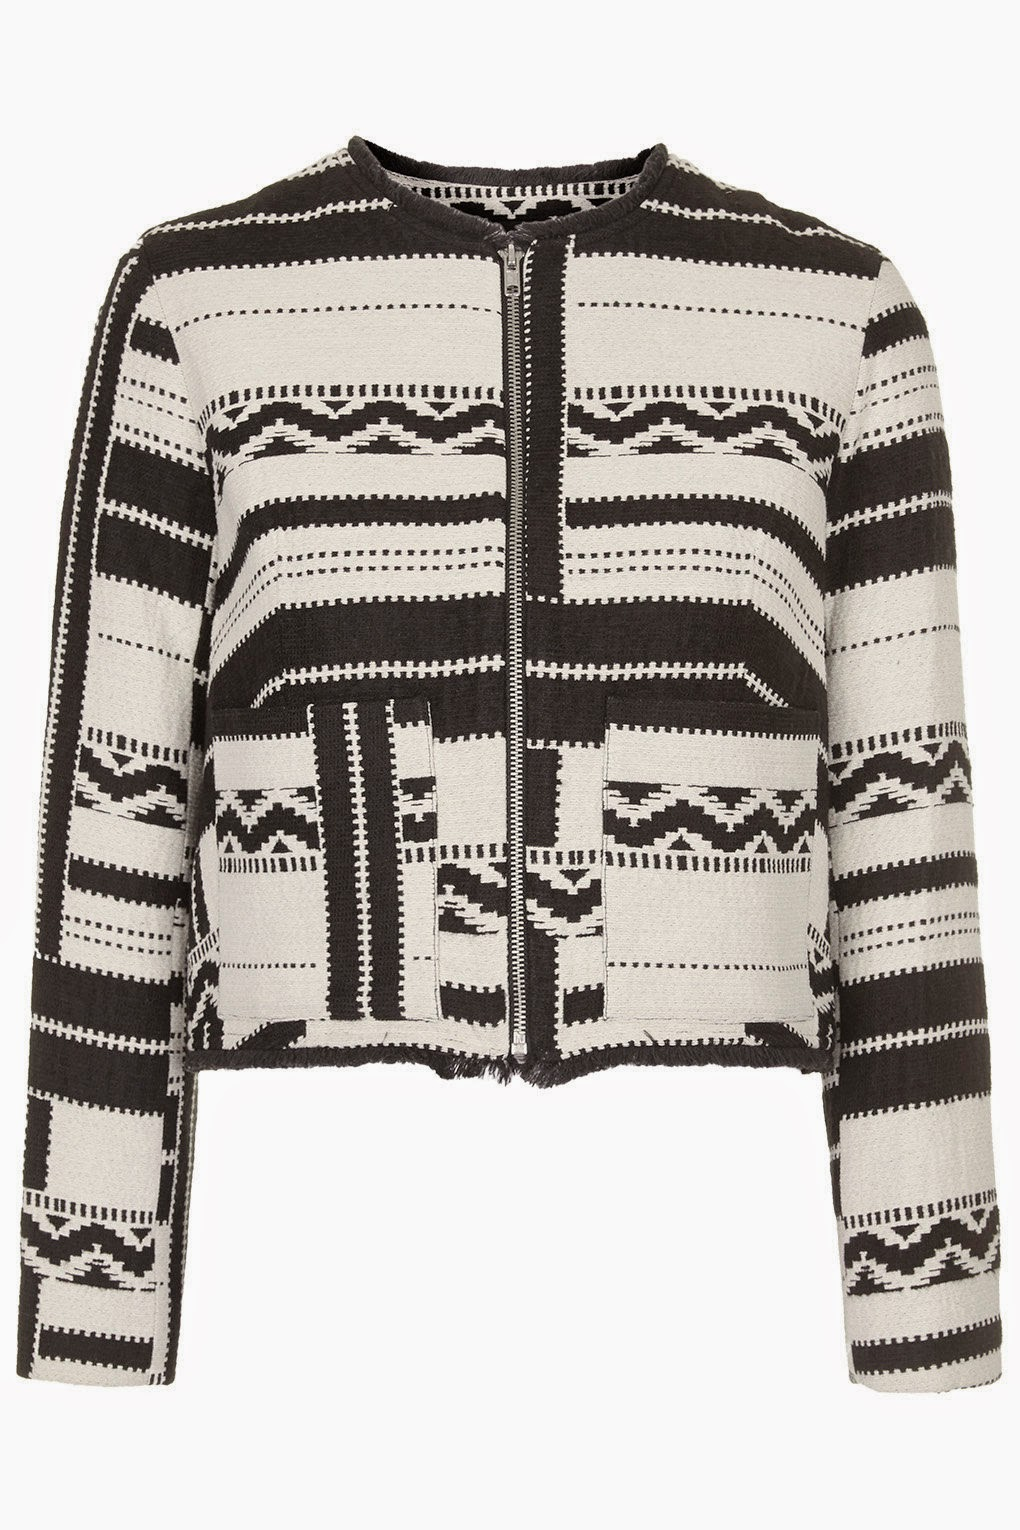 black white aztec jacket,